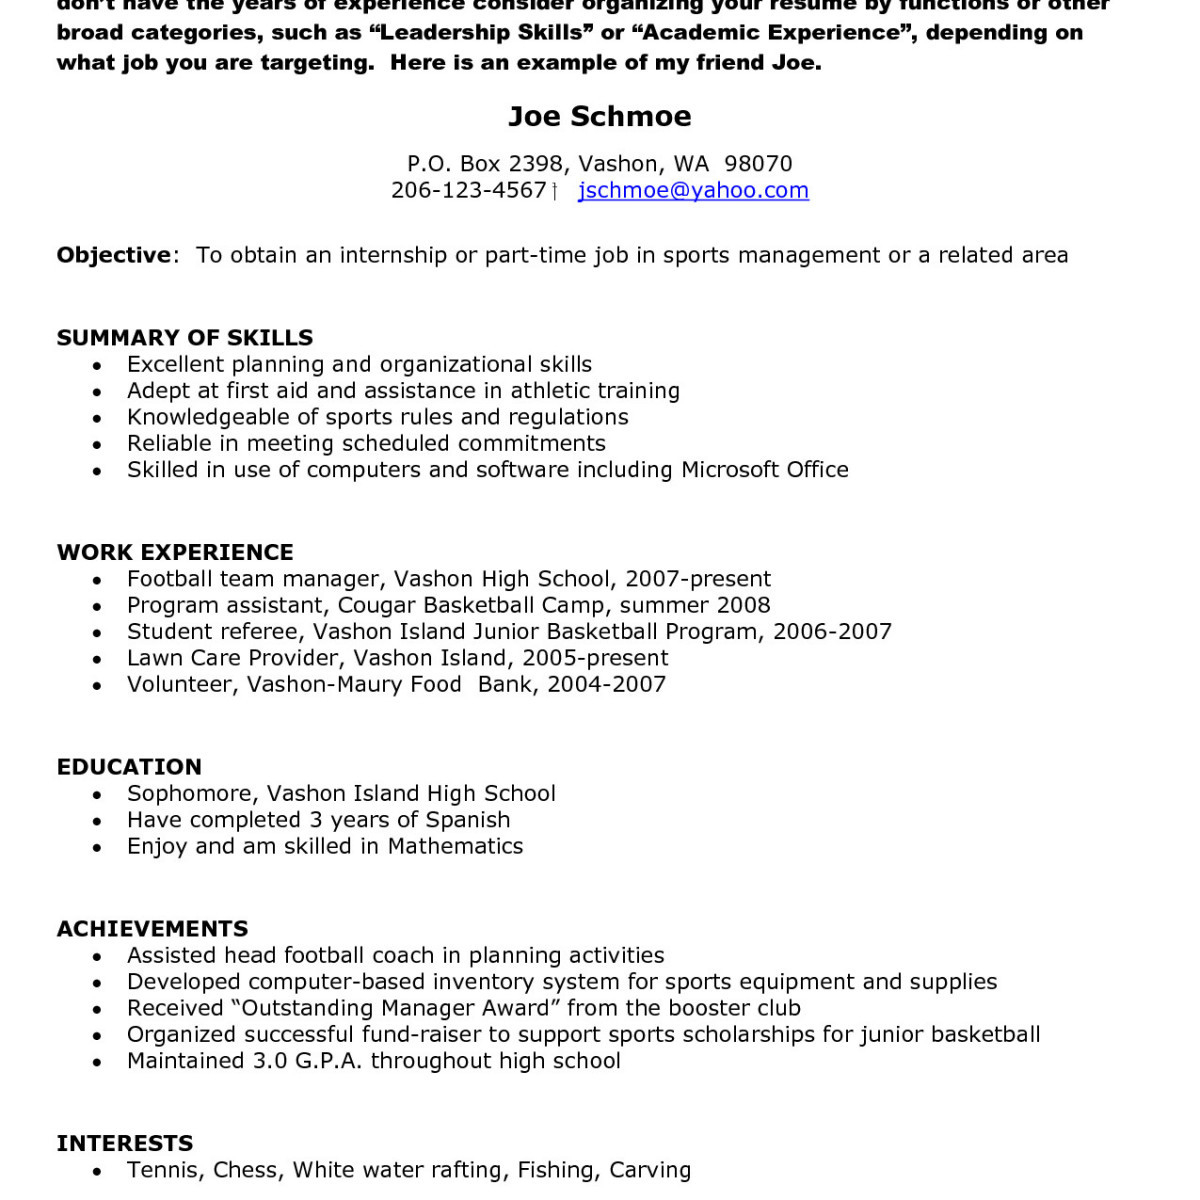 12 resume building tips examples